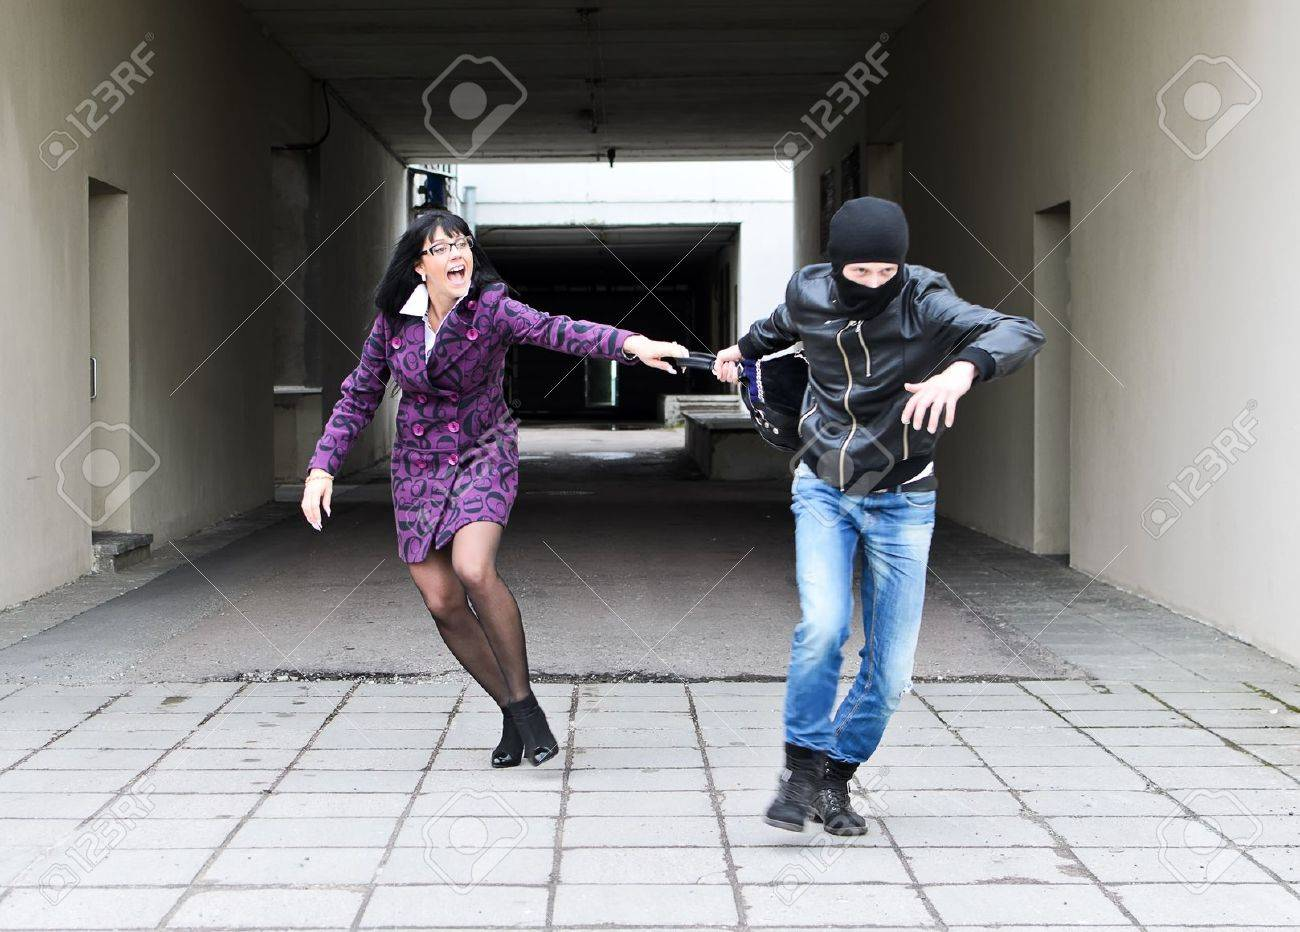 Daylight robbery on the street. Thief steals a bag. Stock Photo - 13559102